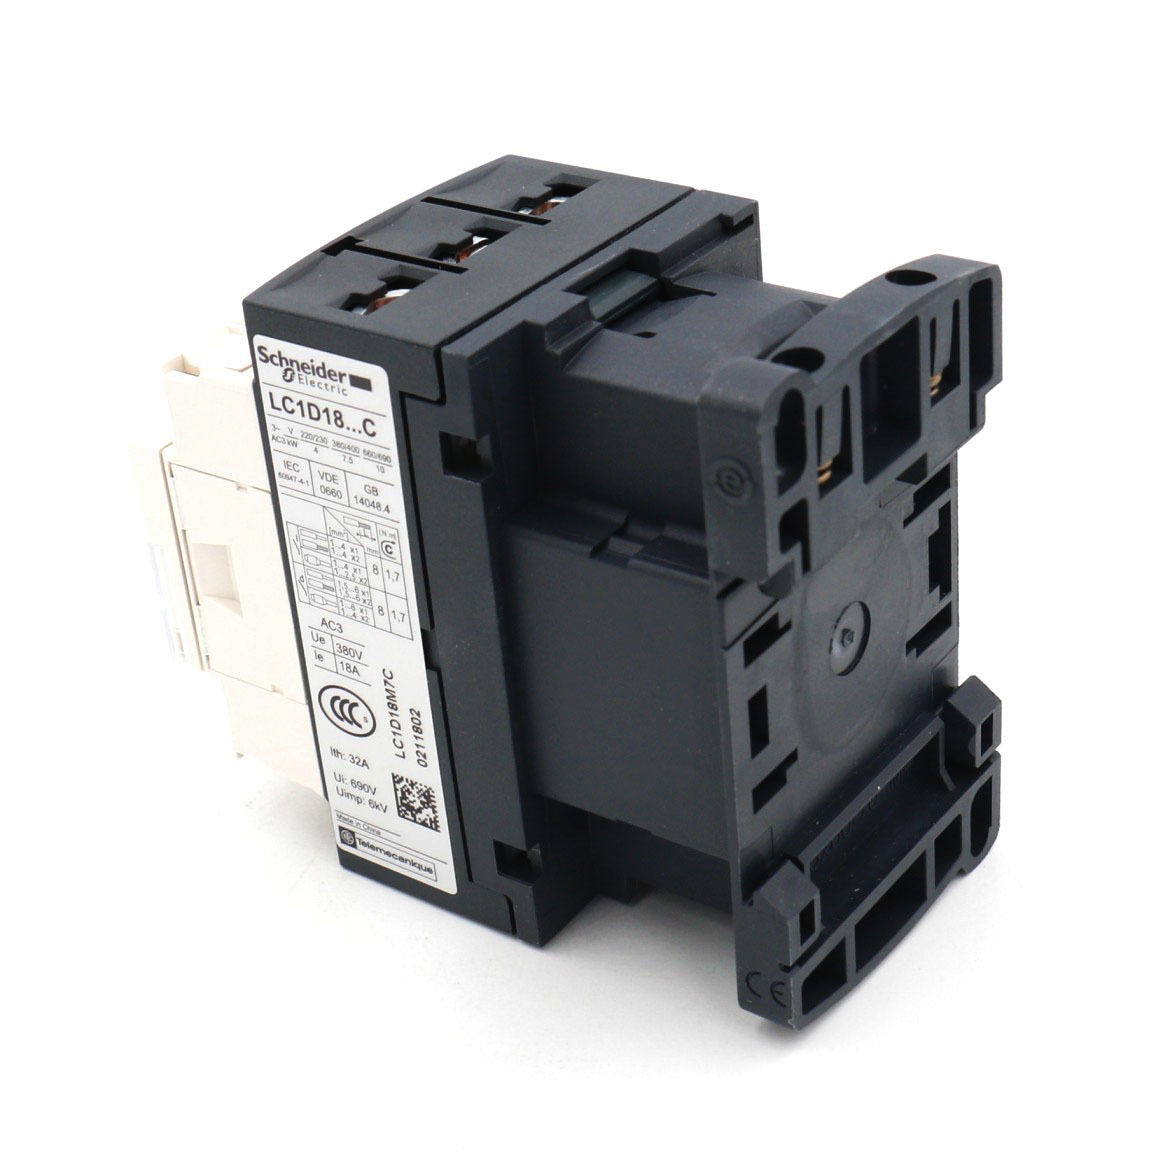 Schneider Lc1d18 Motor Control Ac Contactor 32 Amp 3 Phase 220v 50 240 Wiring 60hz Coil In Contactors From Home Improvement On Alibaba Group